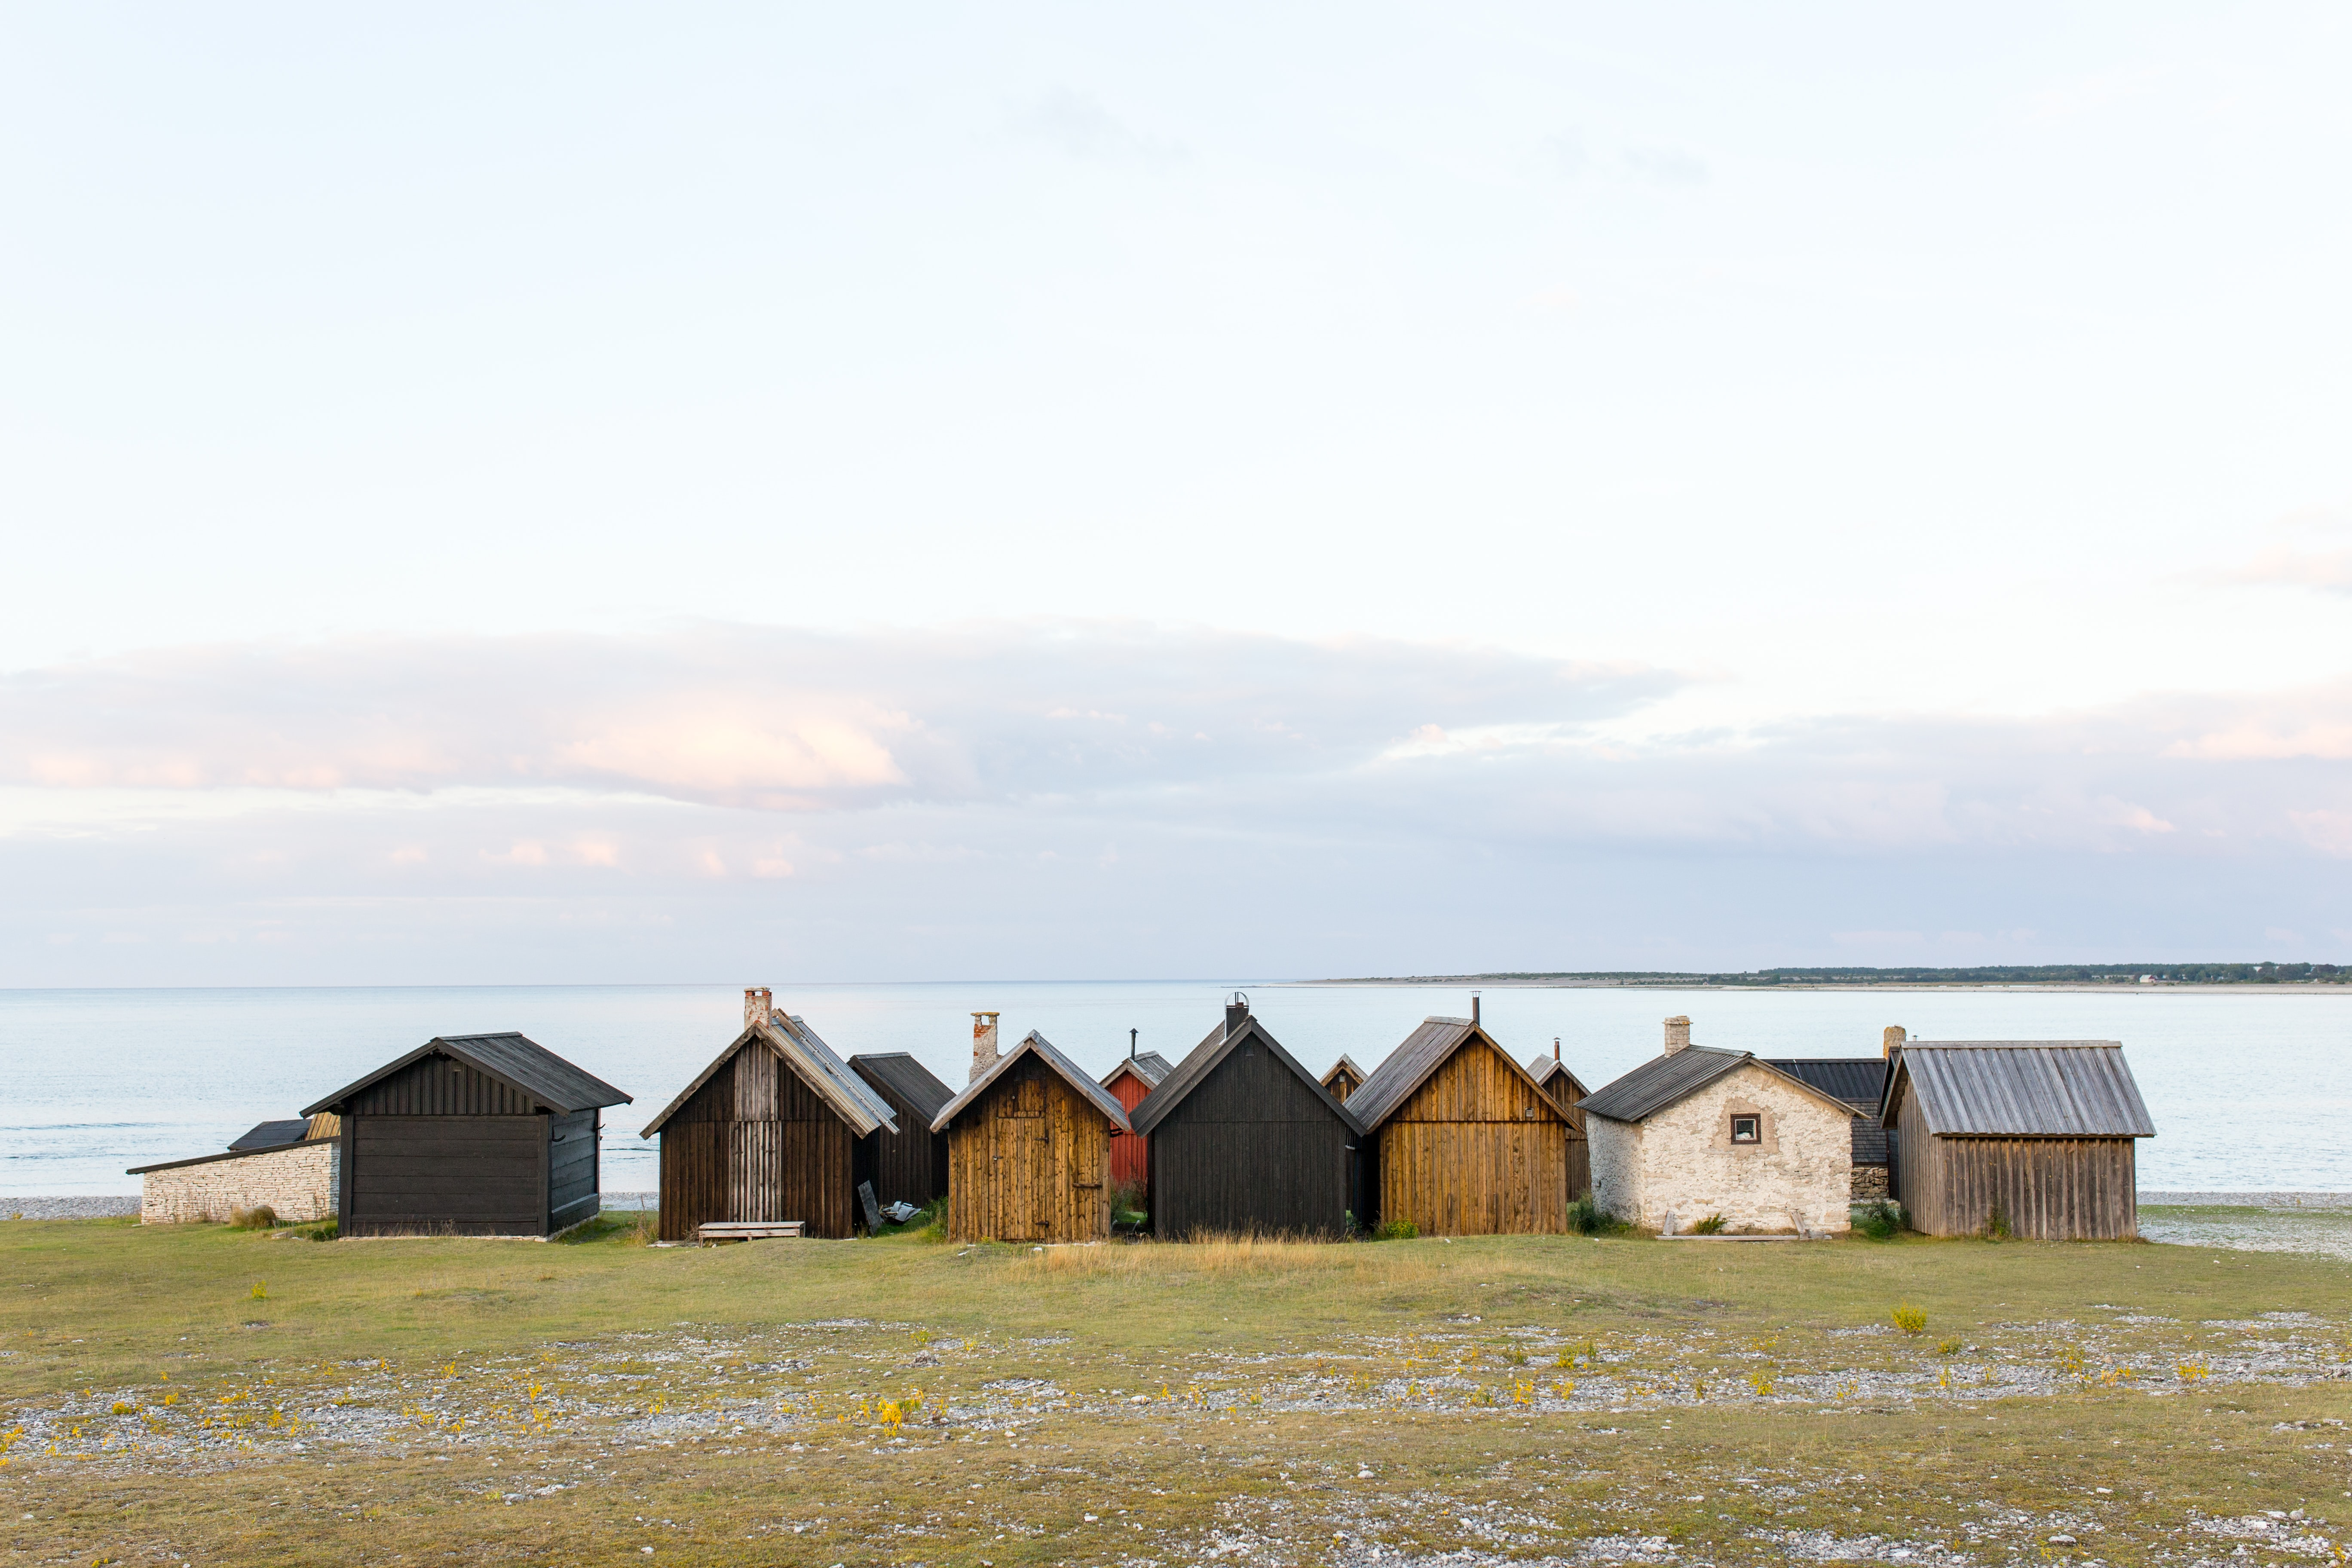 landscape photography of shacks near body of water